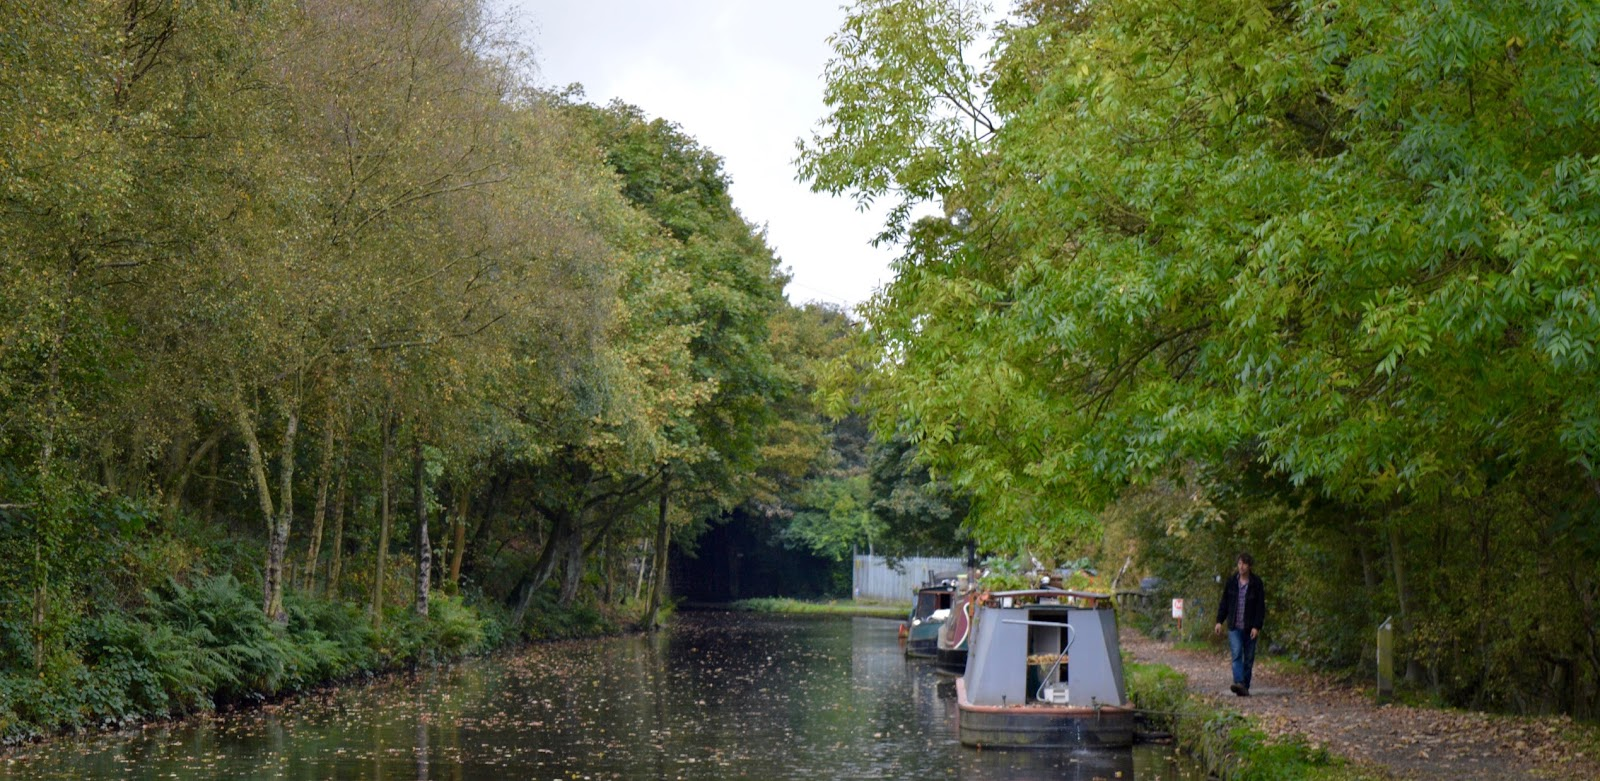 Holiday Ideas for Families with Tweens  - Canal Boat Holiday